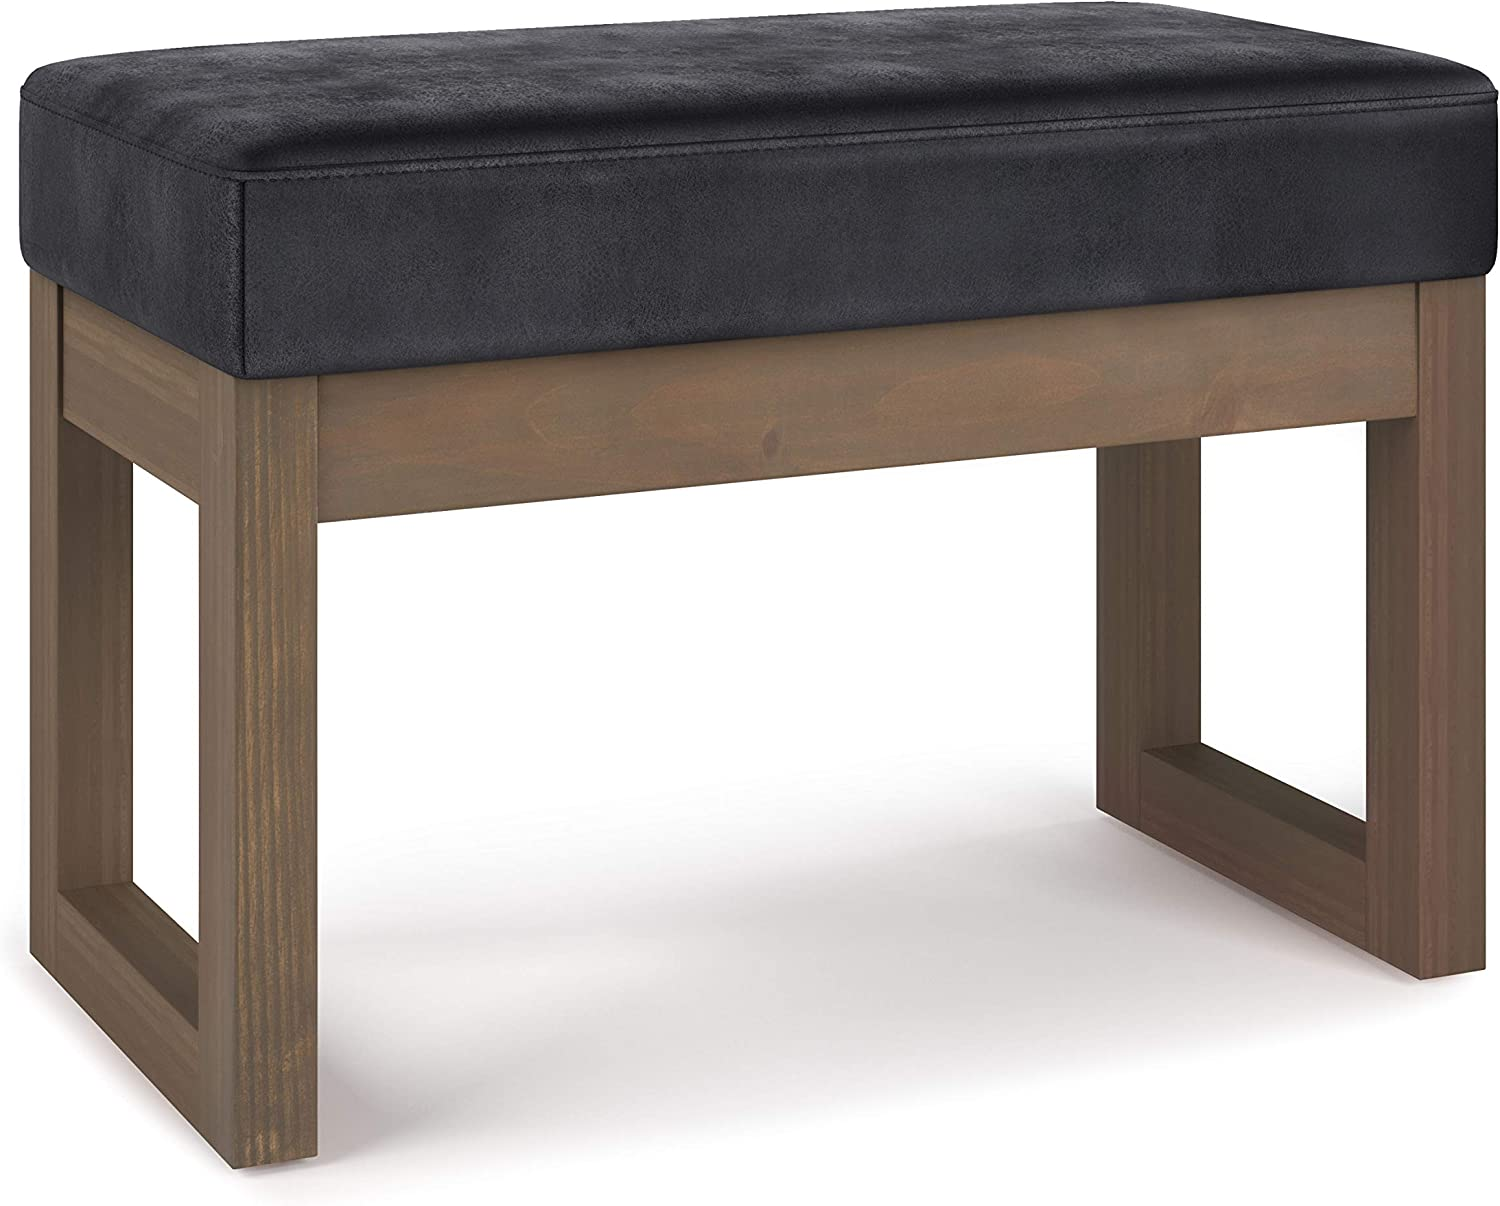 SIMPLIHOME Milltown 26 inch Wide Contemporary Rectangle Footstool Ottoman Bench in Distressed Black Faux Air Leather, for Living Room, Bedroom